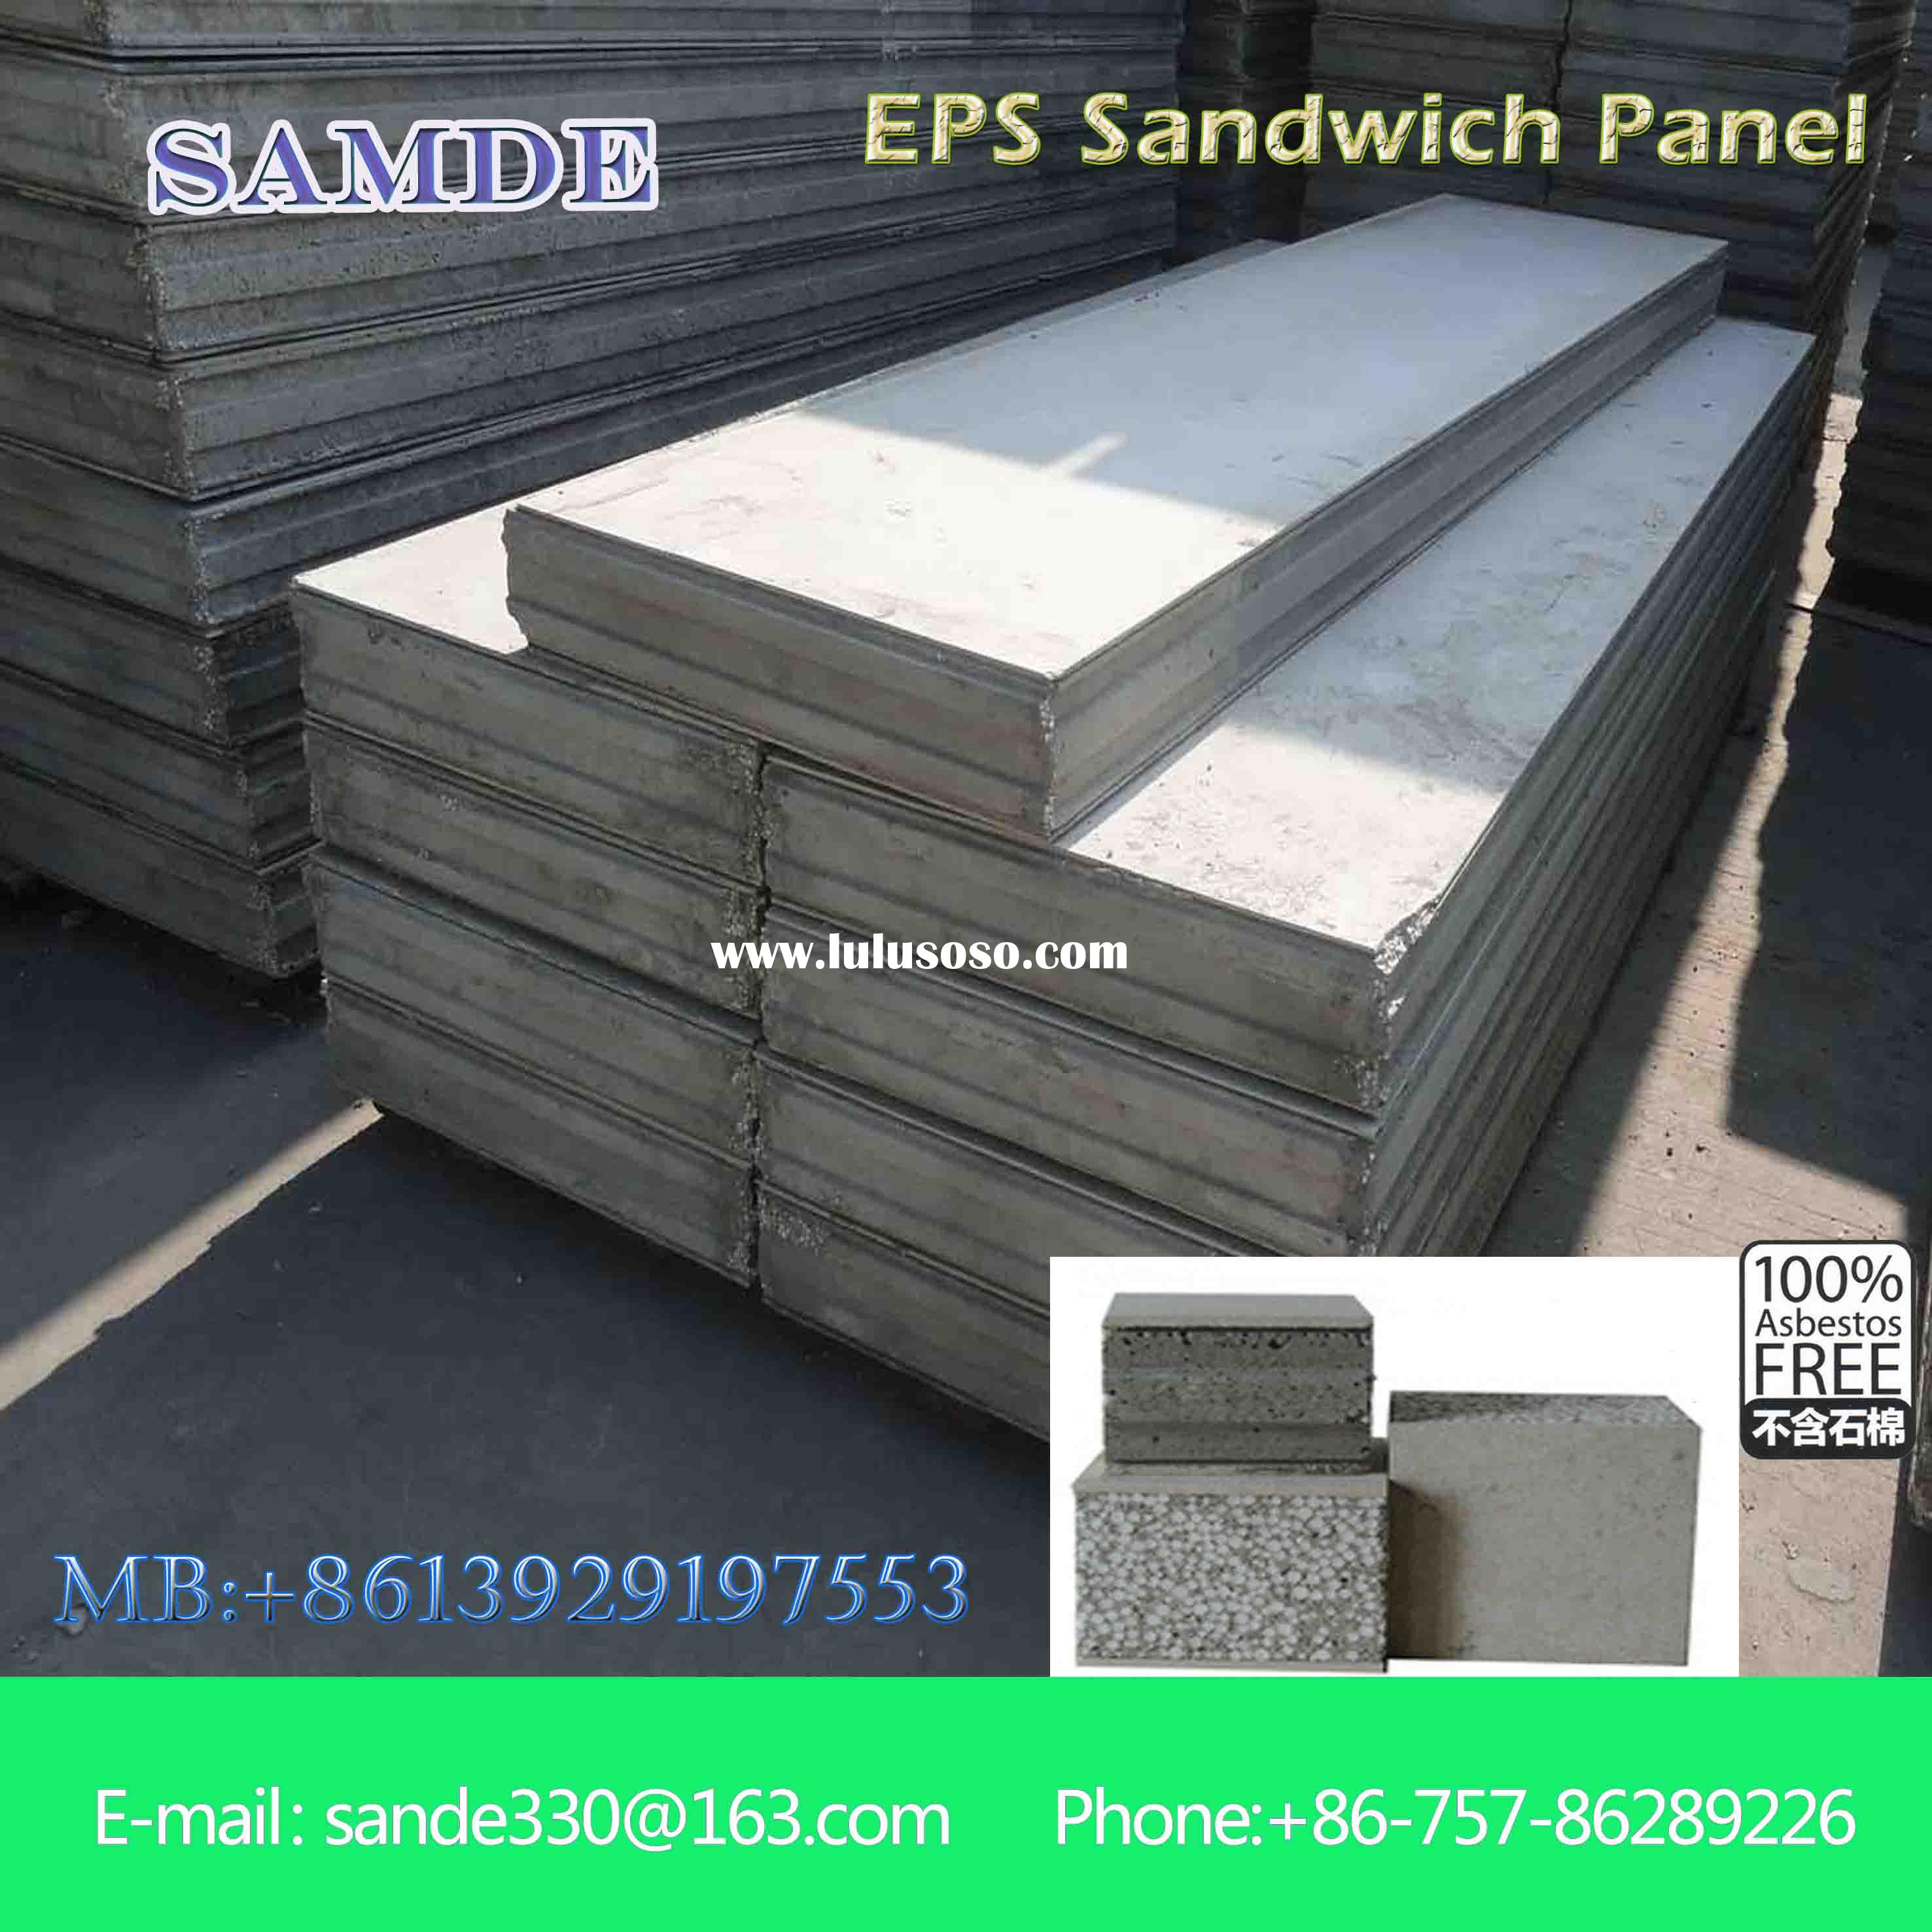 100% Non asbestos fiber cement sandwich wall board for wall building 2440*610mm